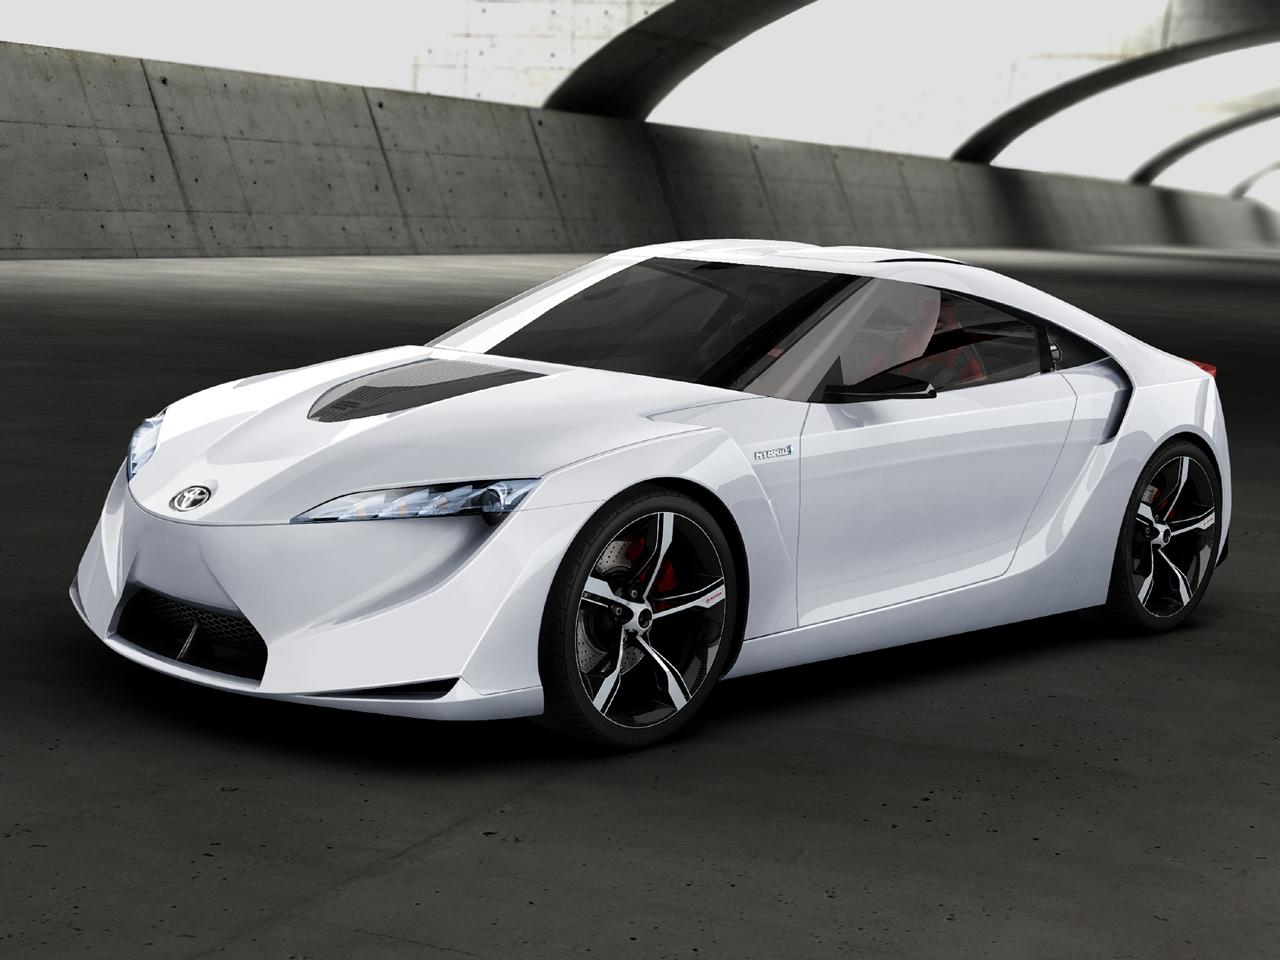 toyota supra 2014. will toyota unveil a supra sports car concept at the 2014 detroit auto show ft hs p